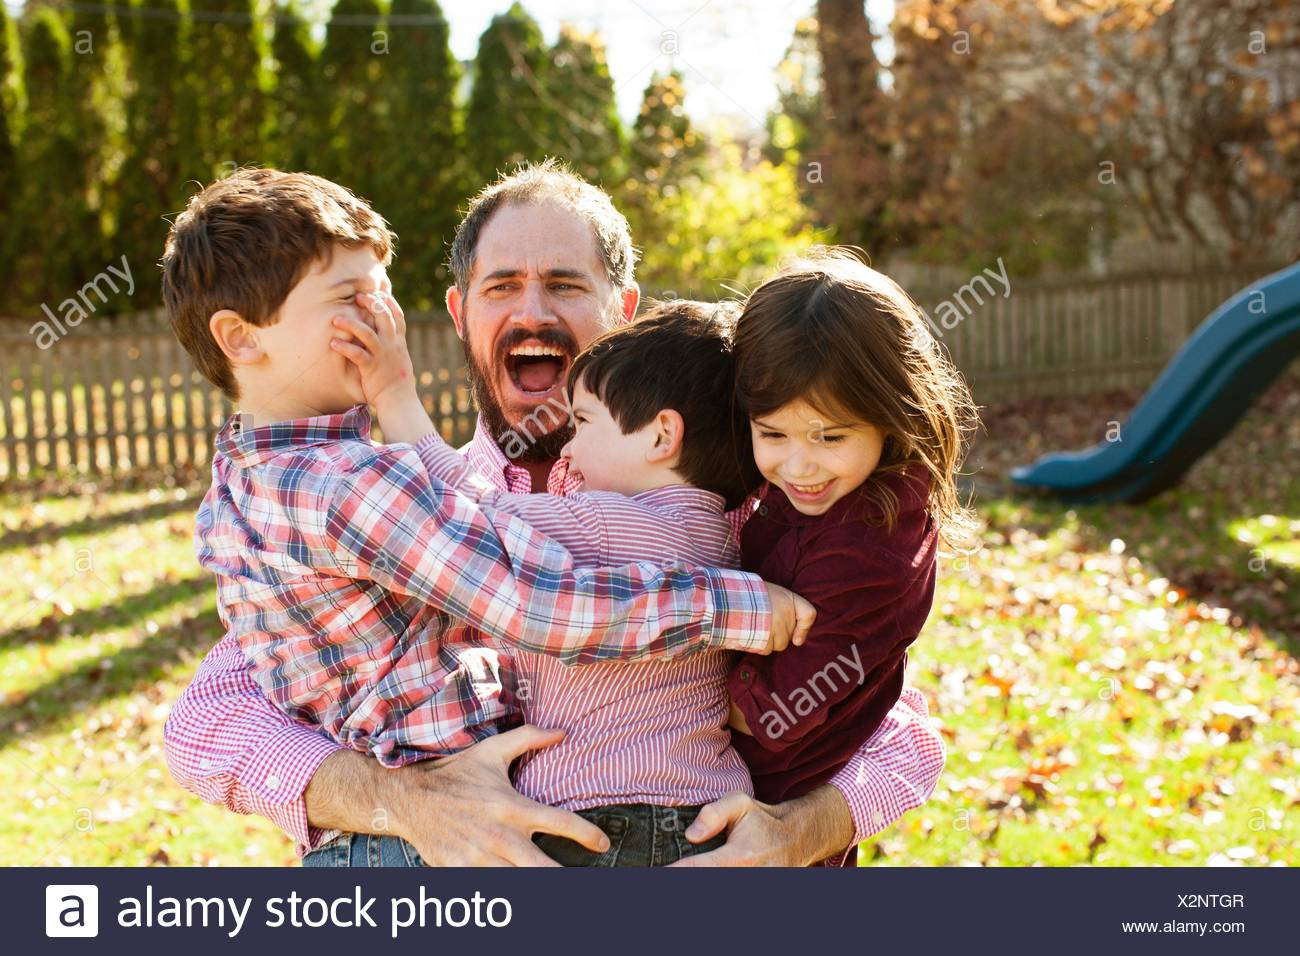 Father carrying playful children in his arms, open mouthed looking surprised - Stock Image